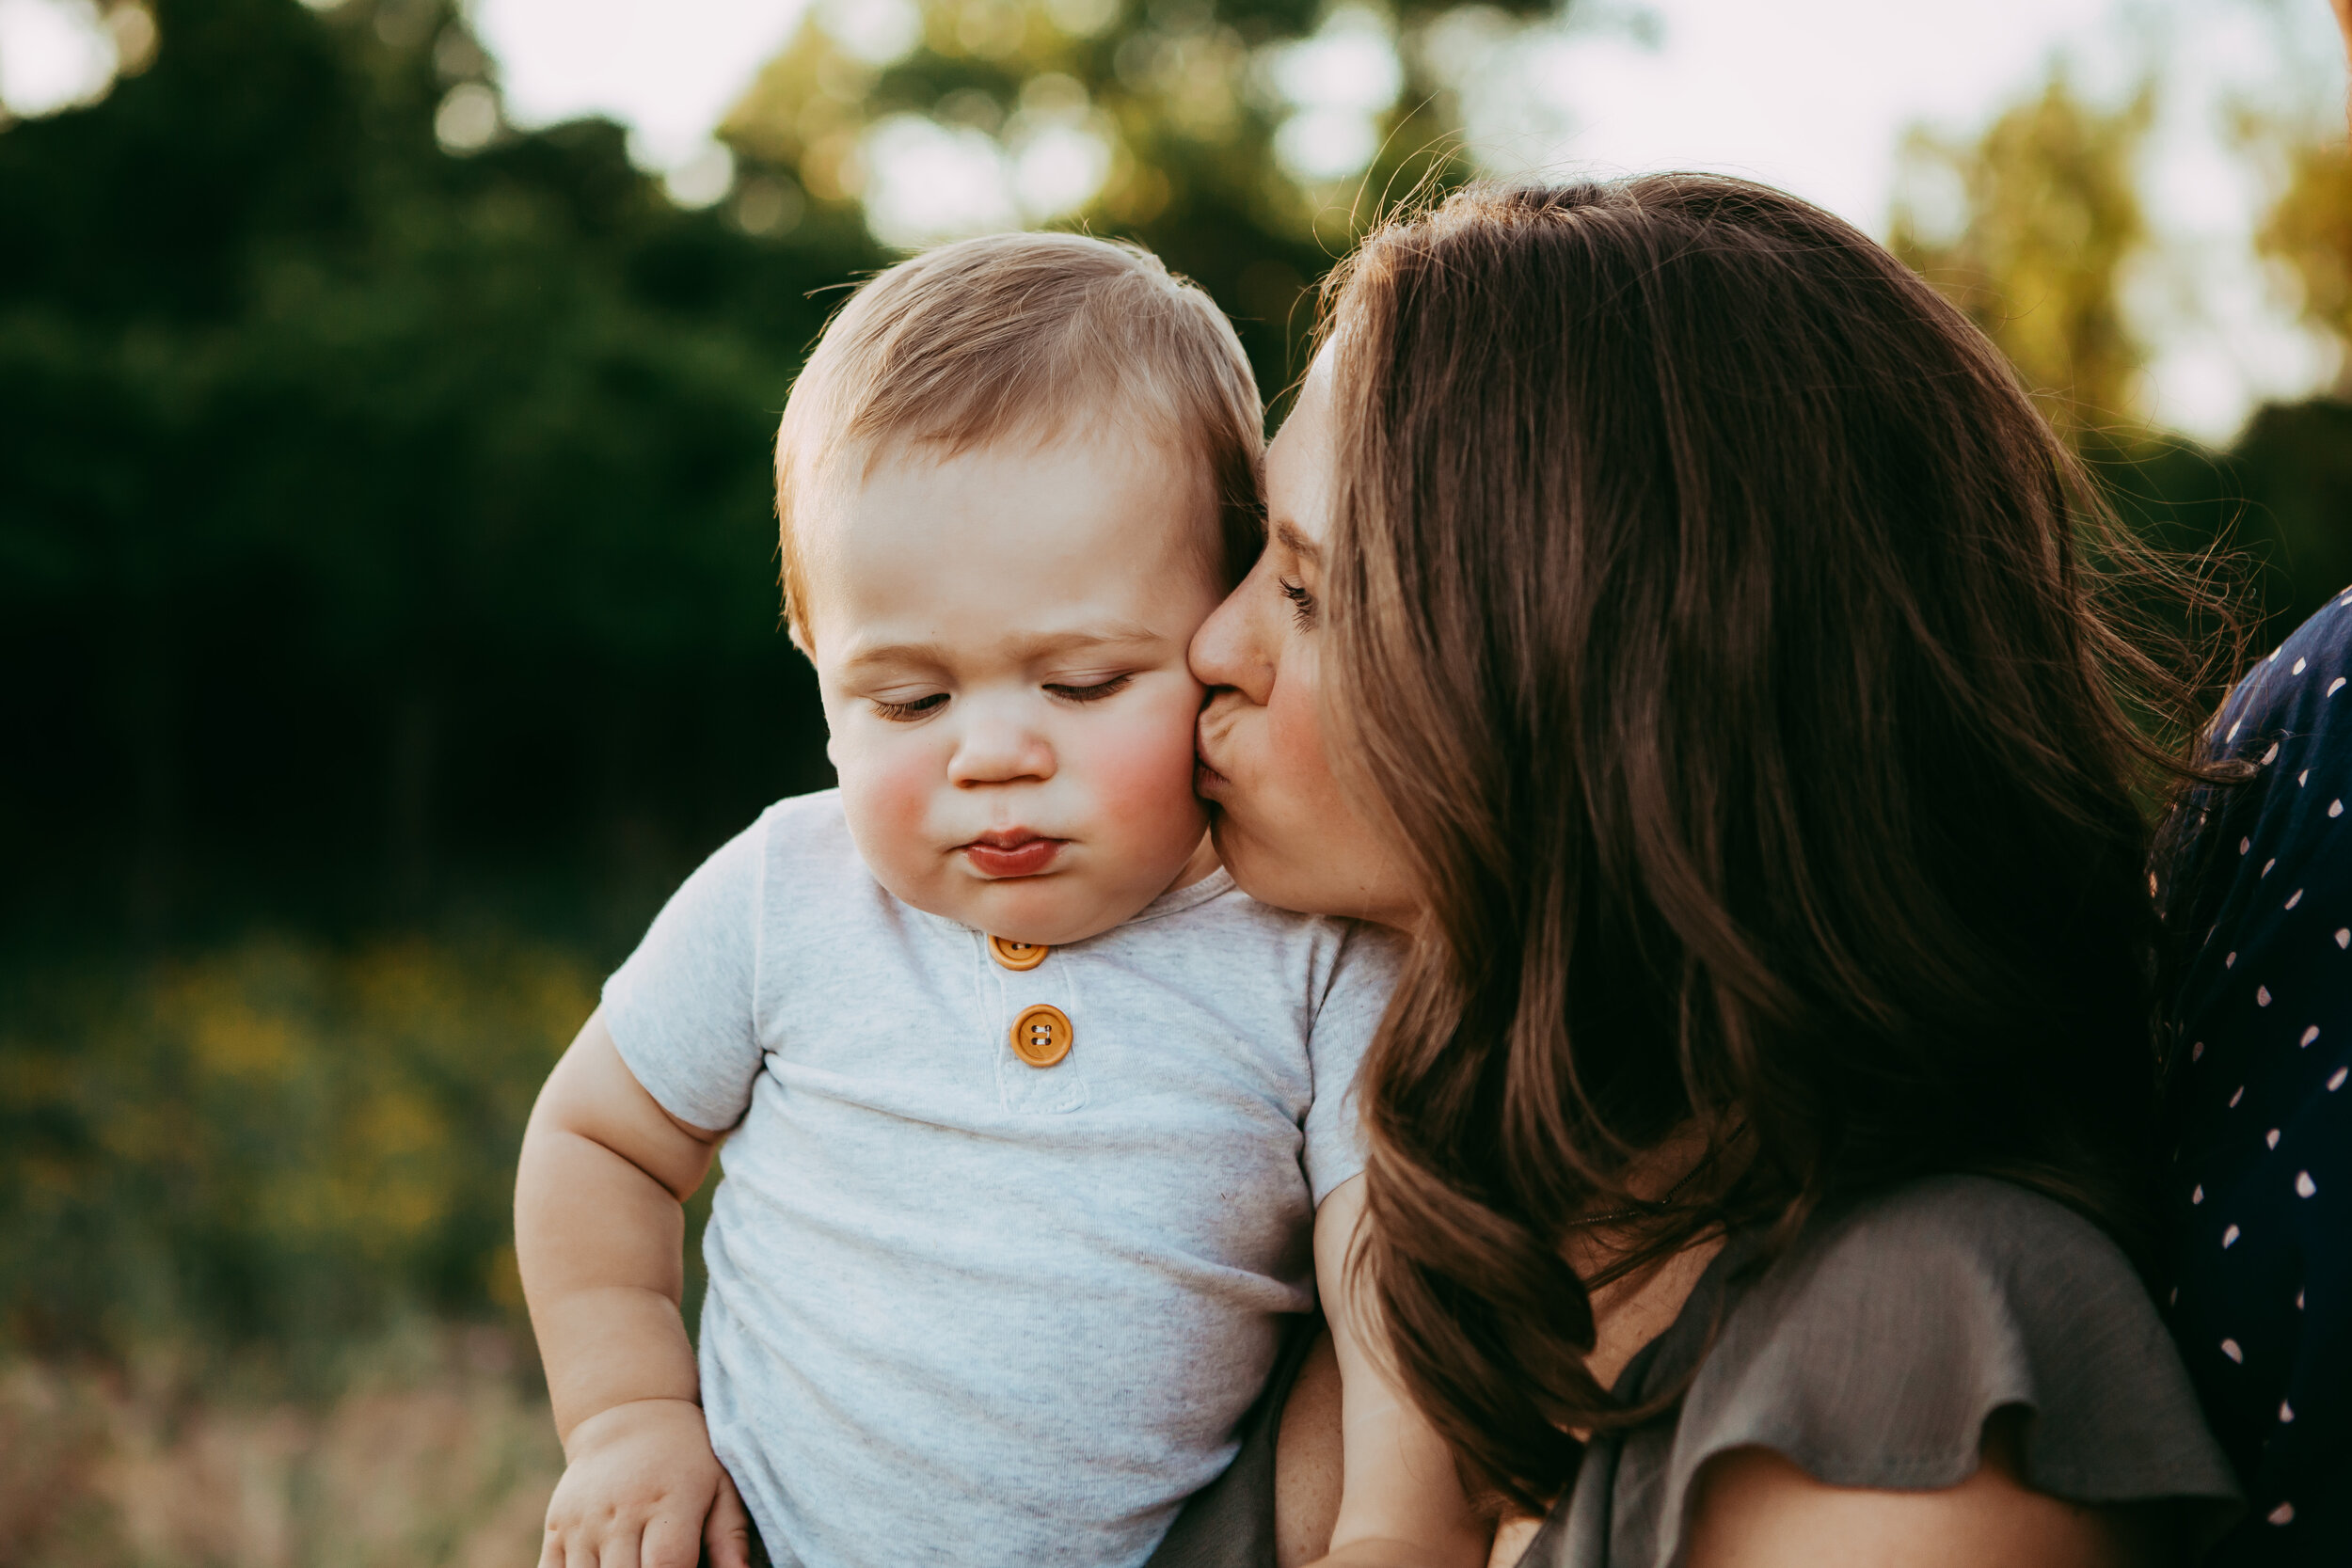 Sweet kisses between mom and her little man as the sun sets. The lighting in this picture was perfect! #tealawardphotography #texasfamilyphotographer #amarillophotographer #amarillofamilyphotographer #lifestylephotography #emotionalphotography #familyphotoshoot #family #lovingsiblings #purejoy #familyphotos #naturalfamilyinteraction